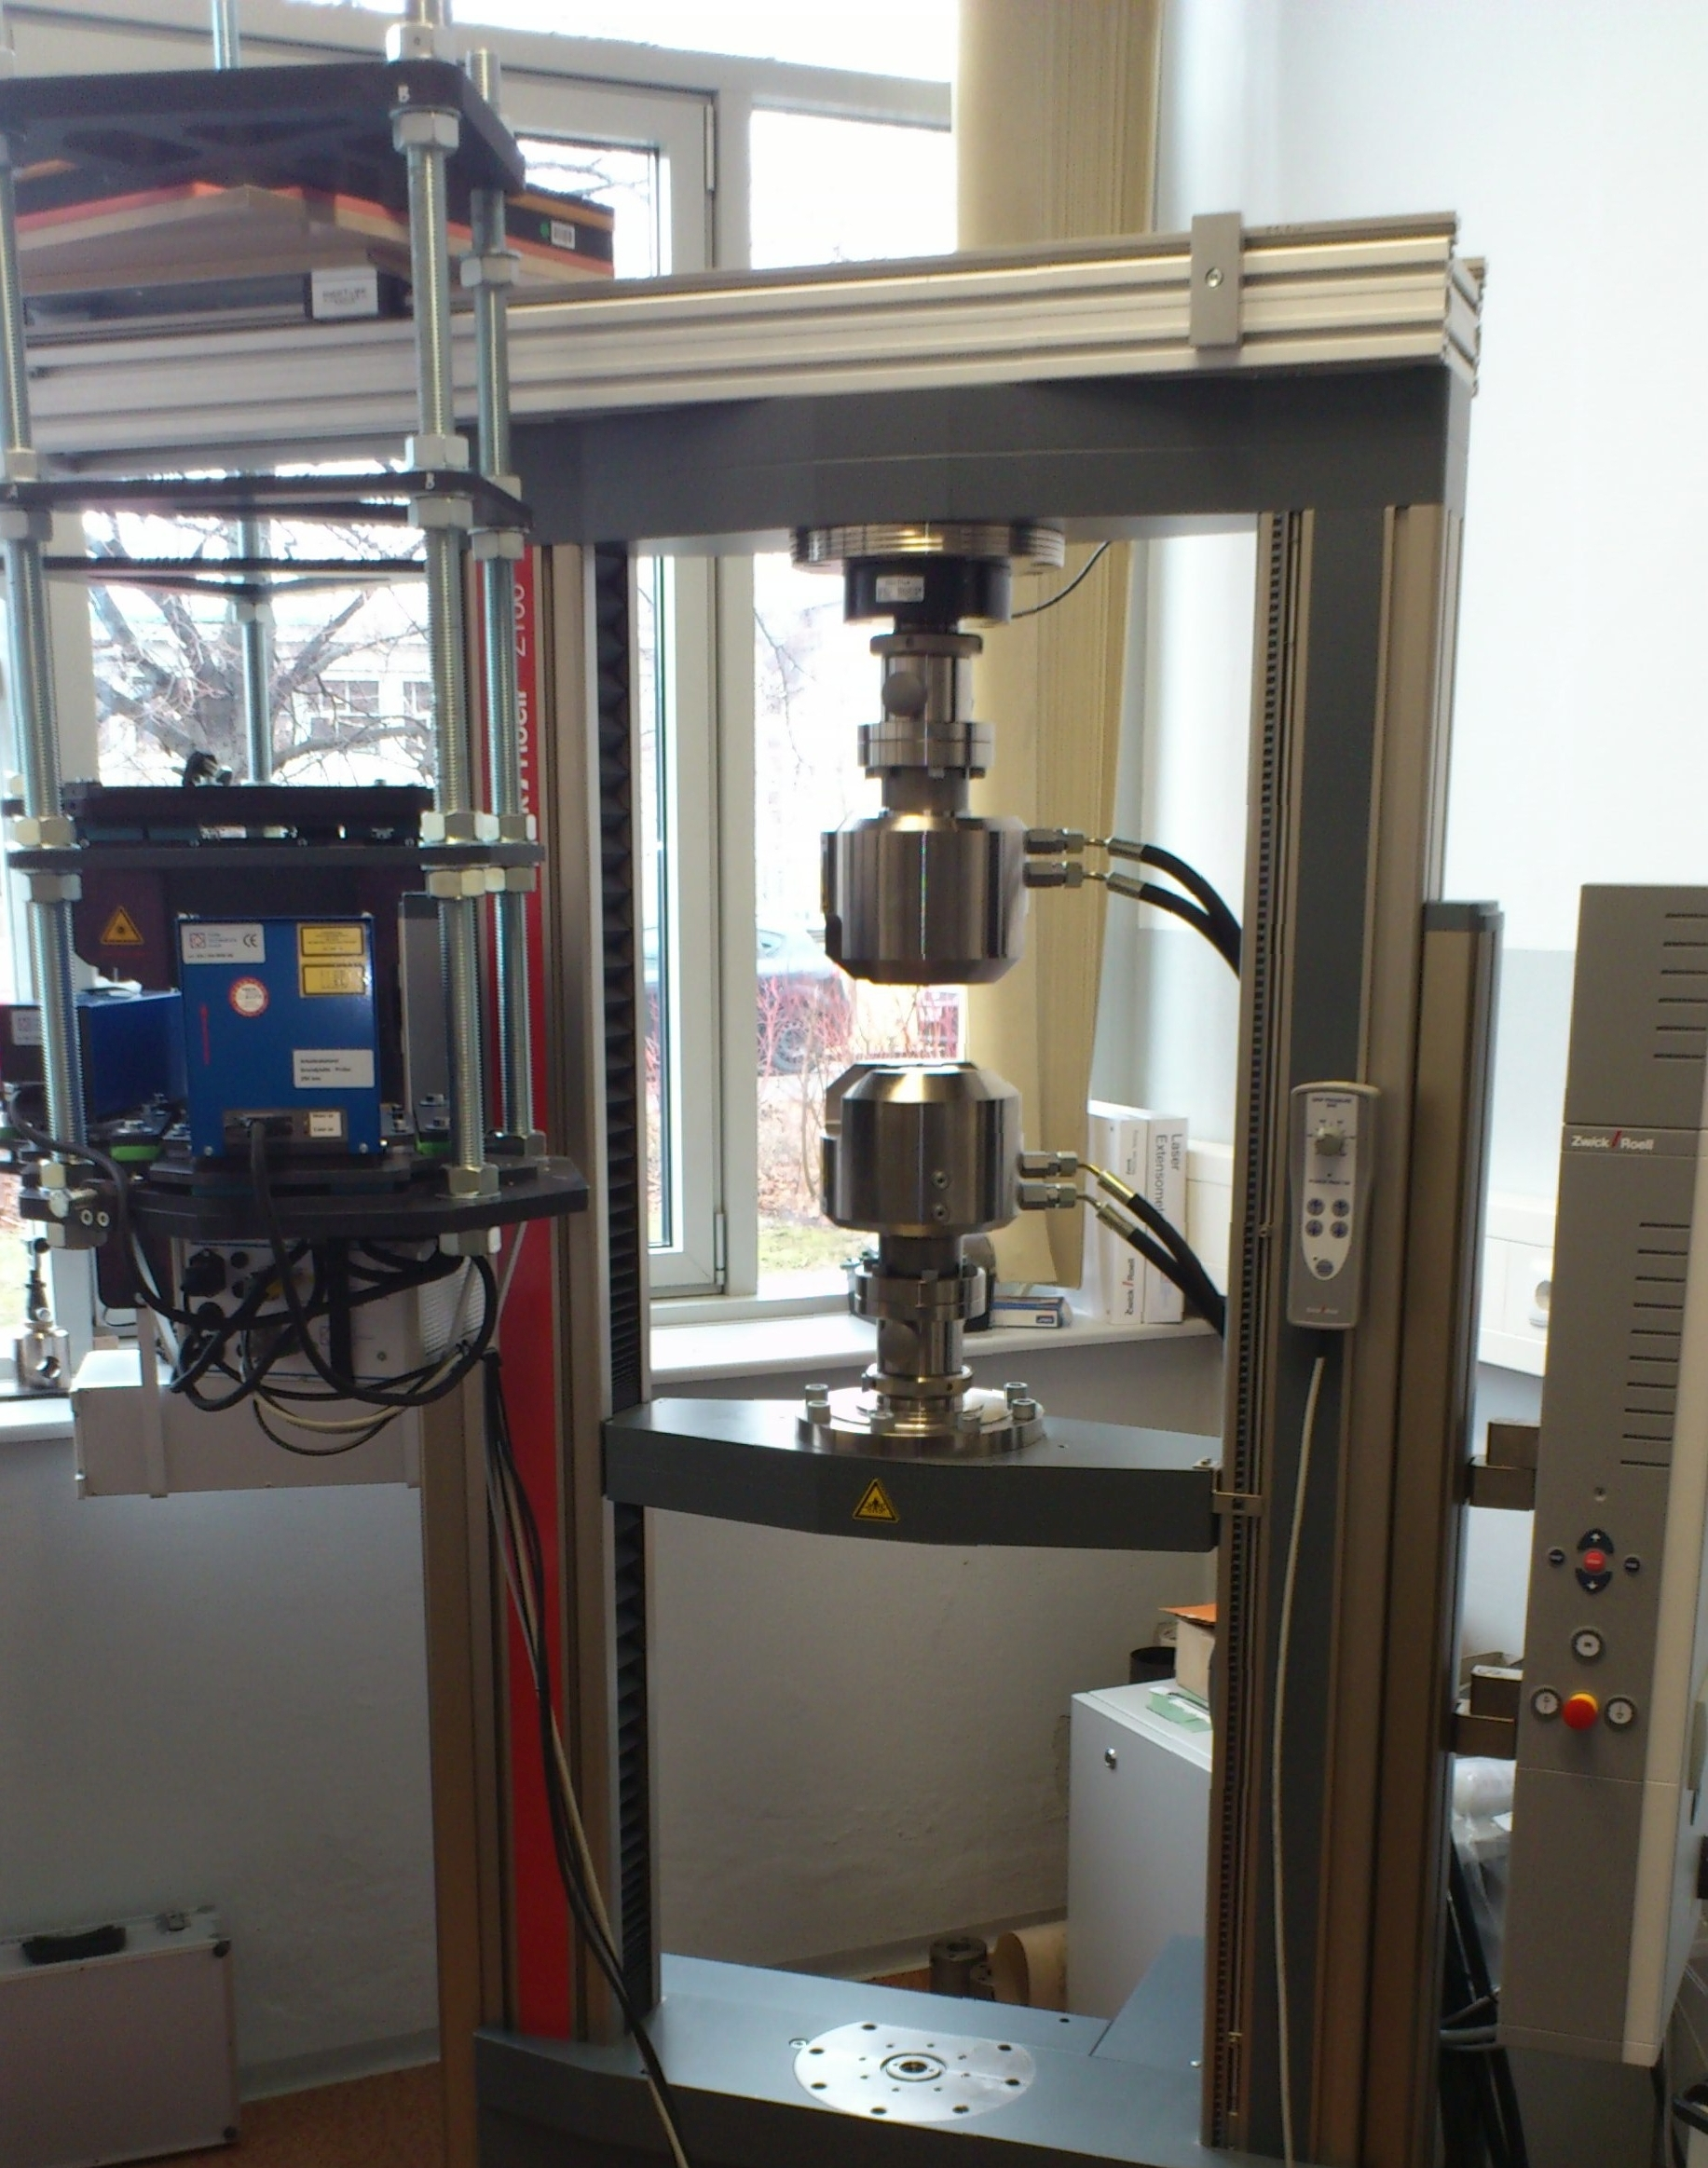 The picture shows the Zwick Material Testing Machine Type Z100 THW at the institute's technical center.